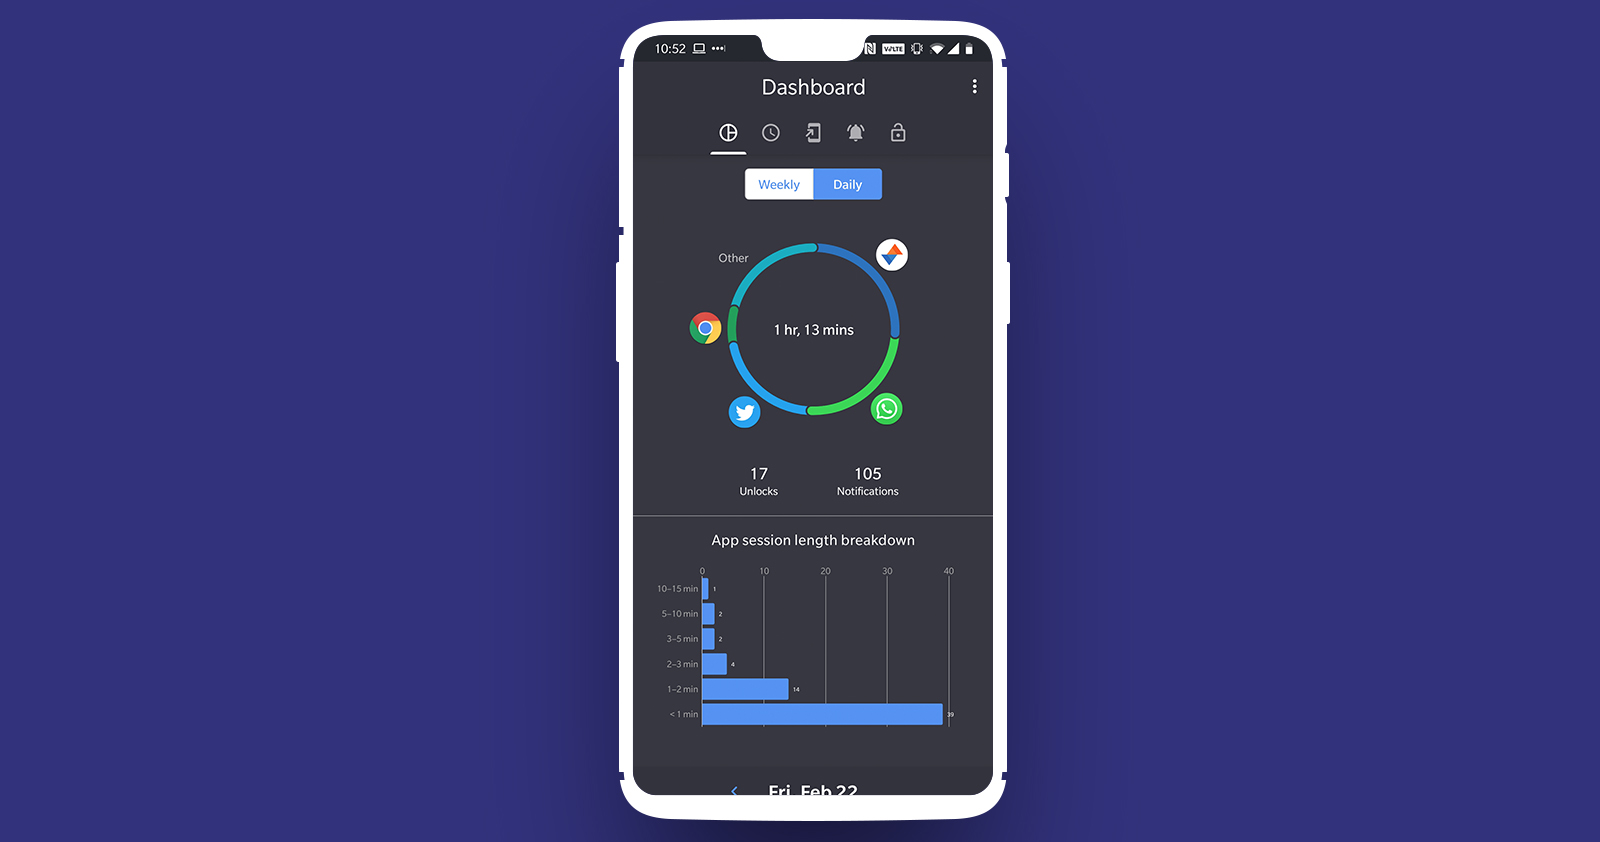 ActionDash works great for visualizing the time you waste on your Android phone